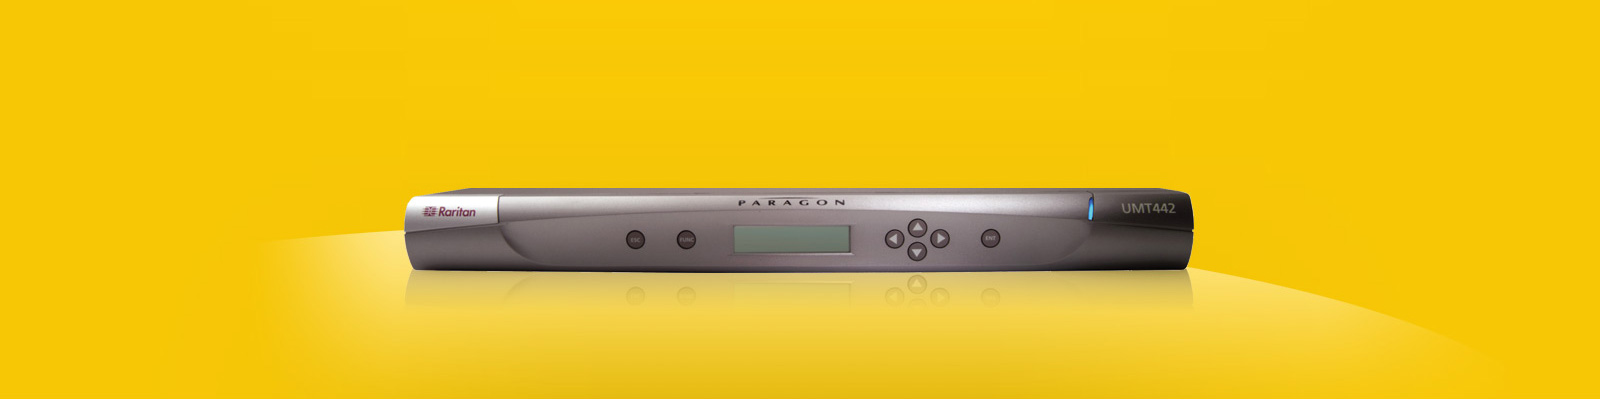 Raritan Paragon 4 User, 42 Port High Density CATx KVM Switch - Multi-Platform: PS/2, USB, Sun and SGI